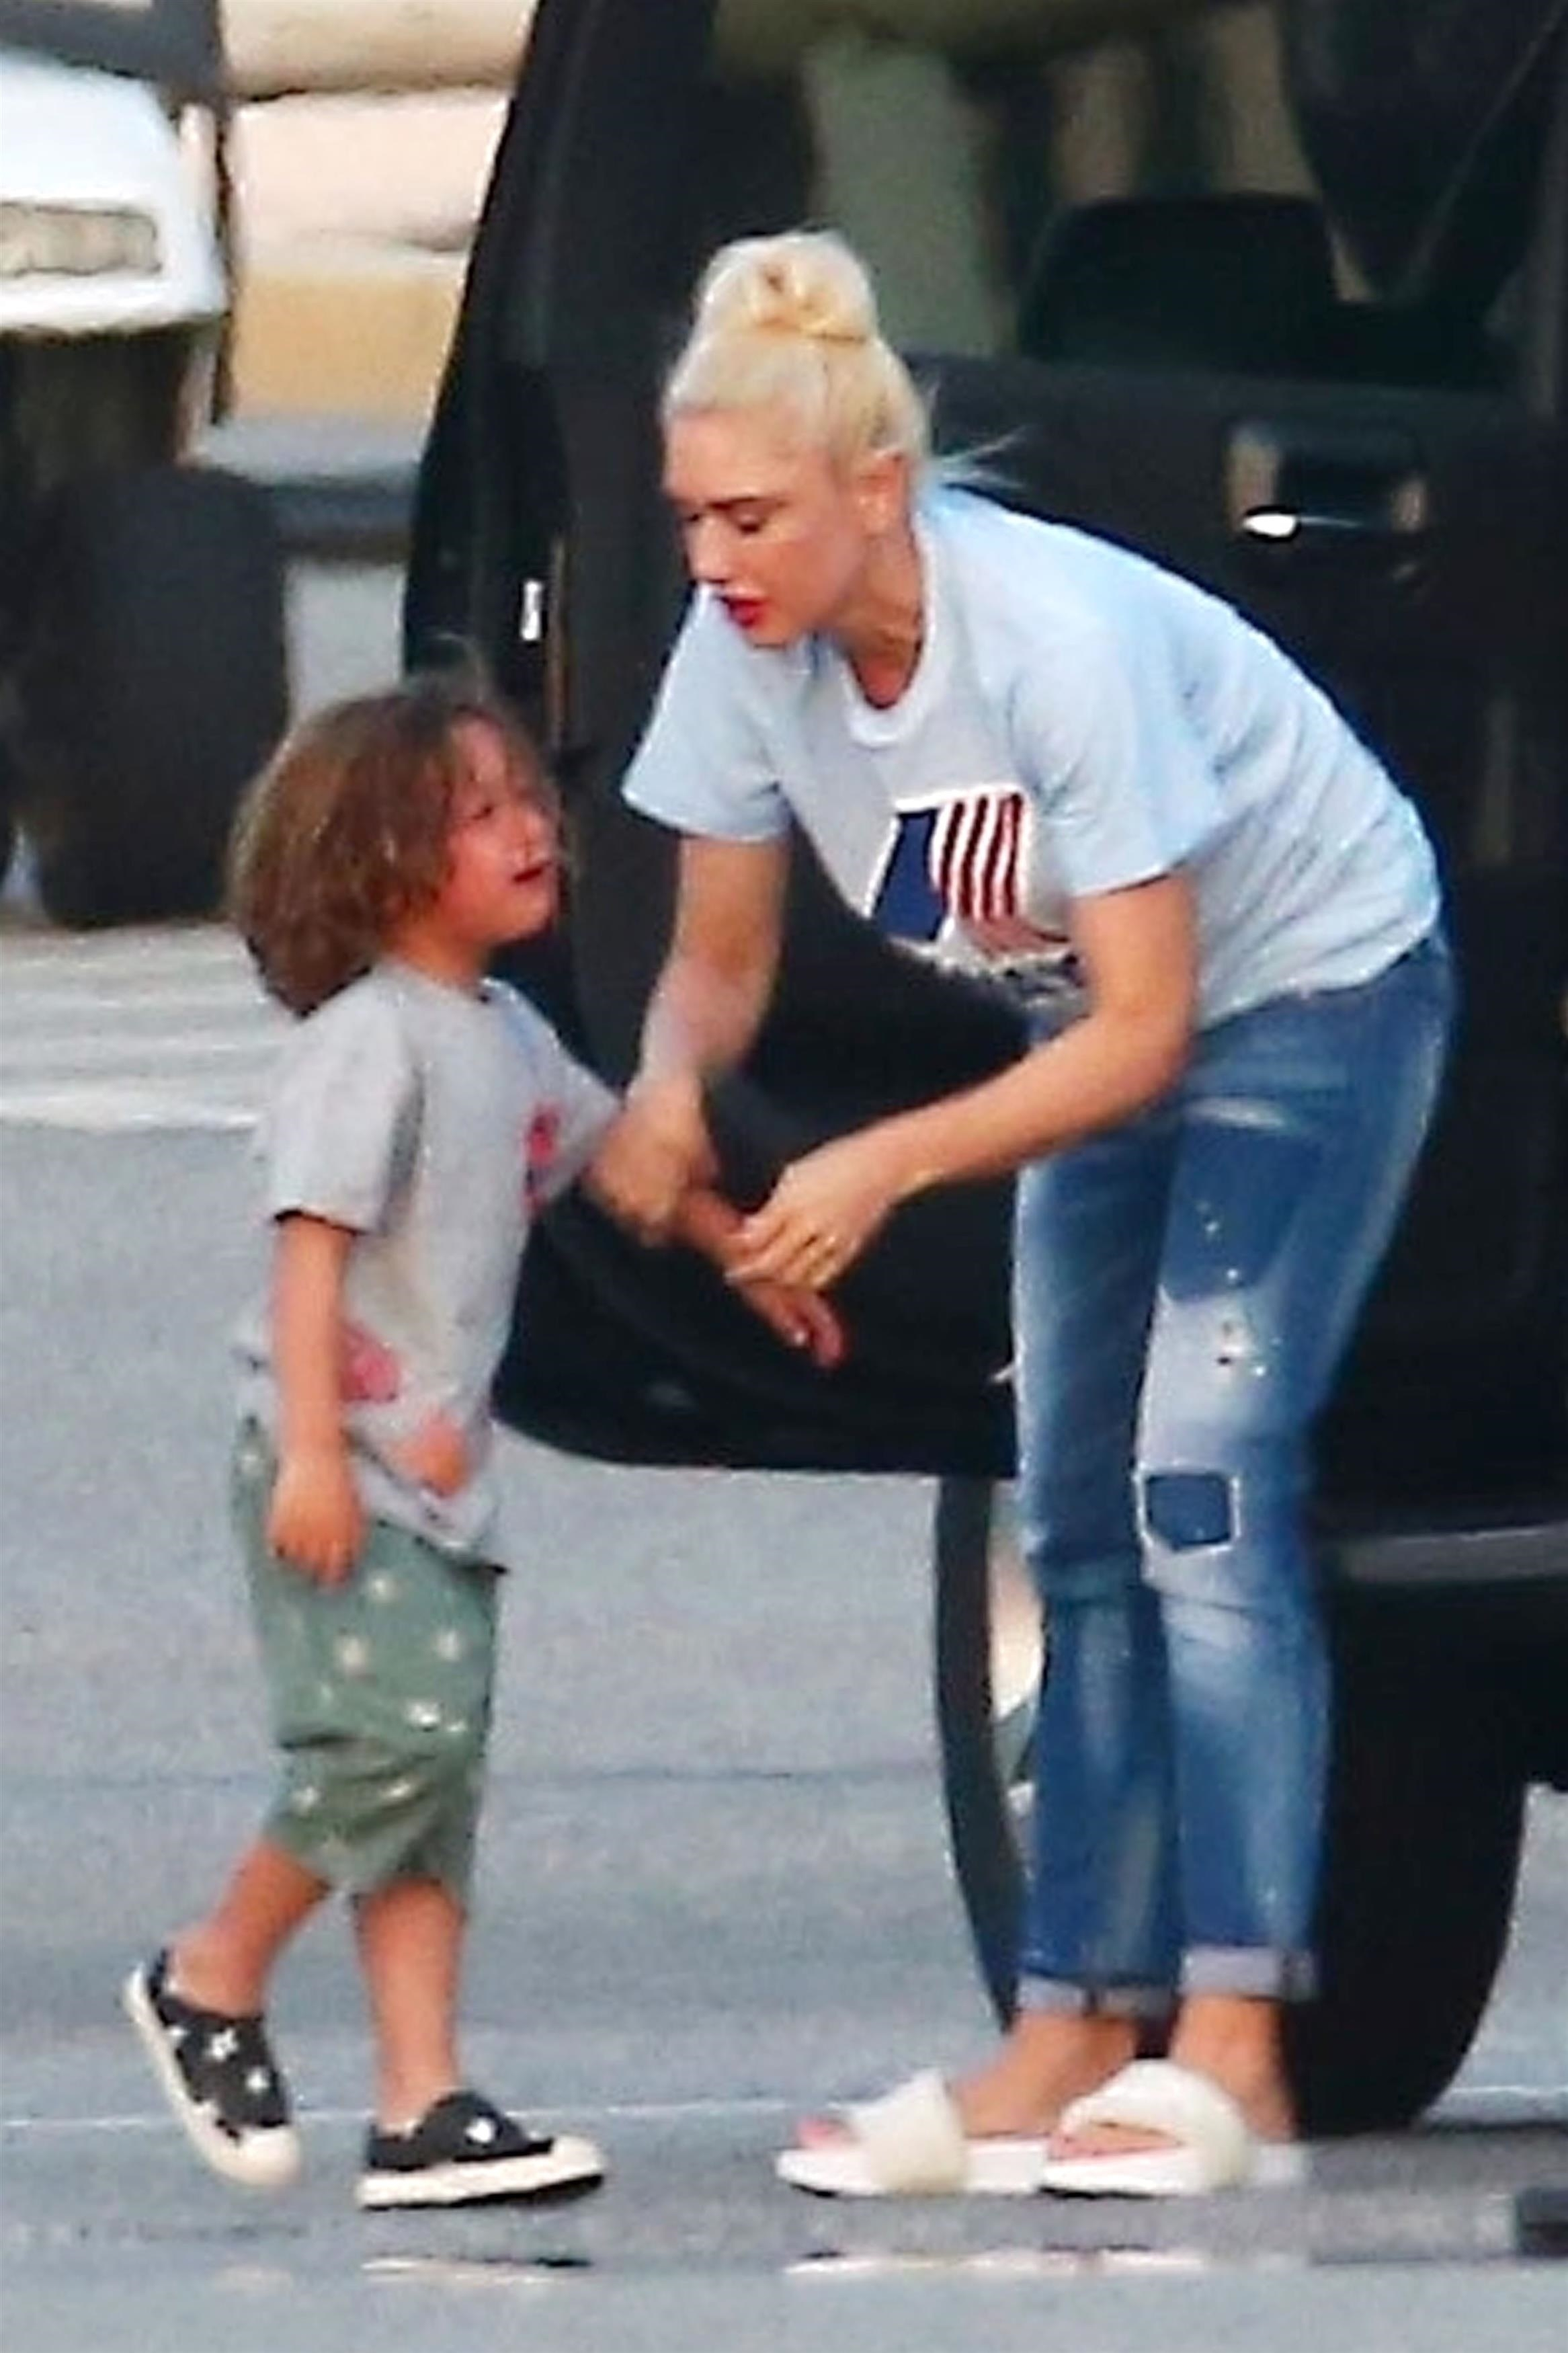 Gwen Stefani was snapped trying to comfort her son Apollo after a minor meltdown while they were out in Los Angeles on July 30, 2018.